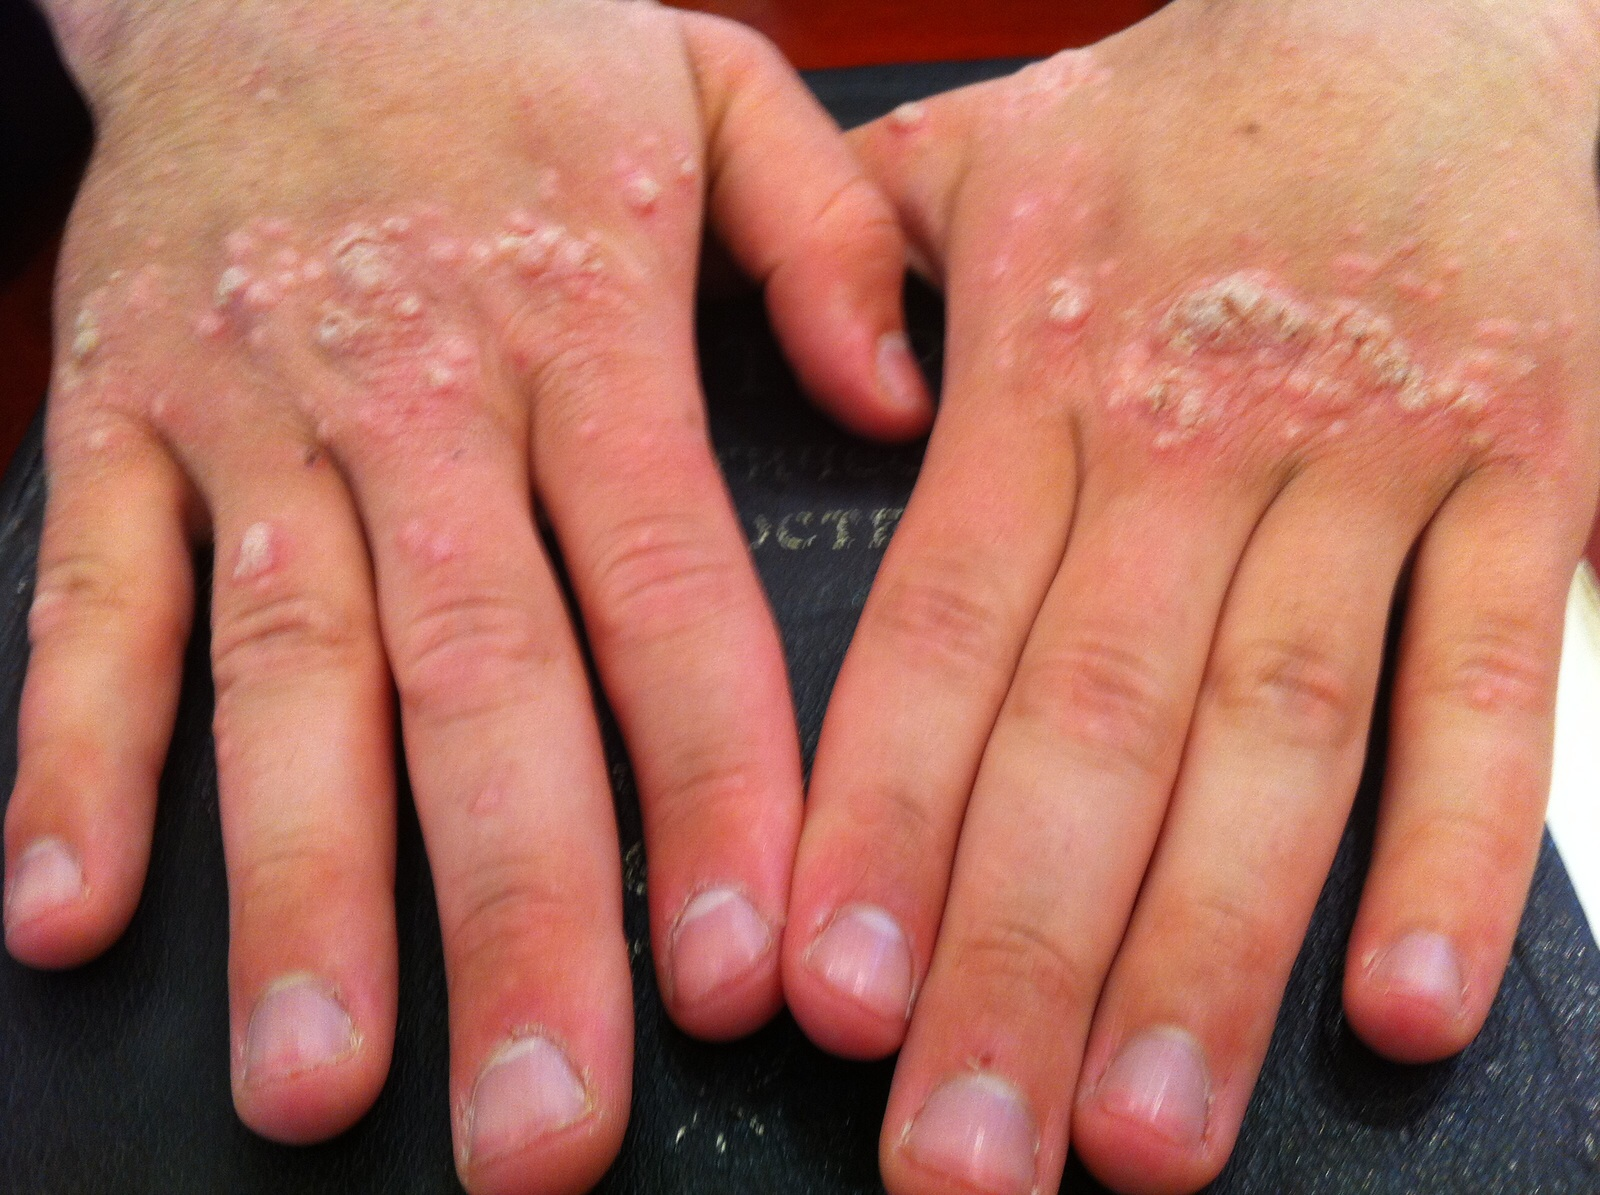 warts on hands eczema)